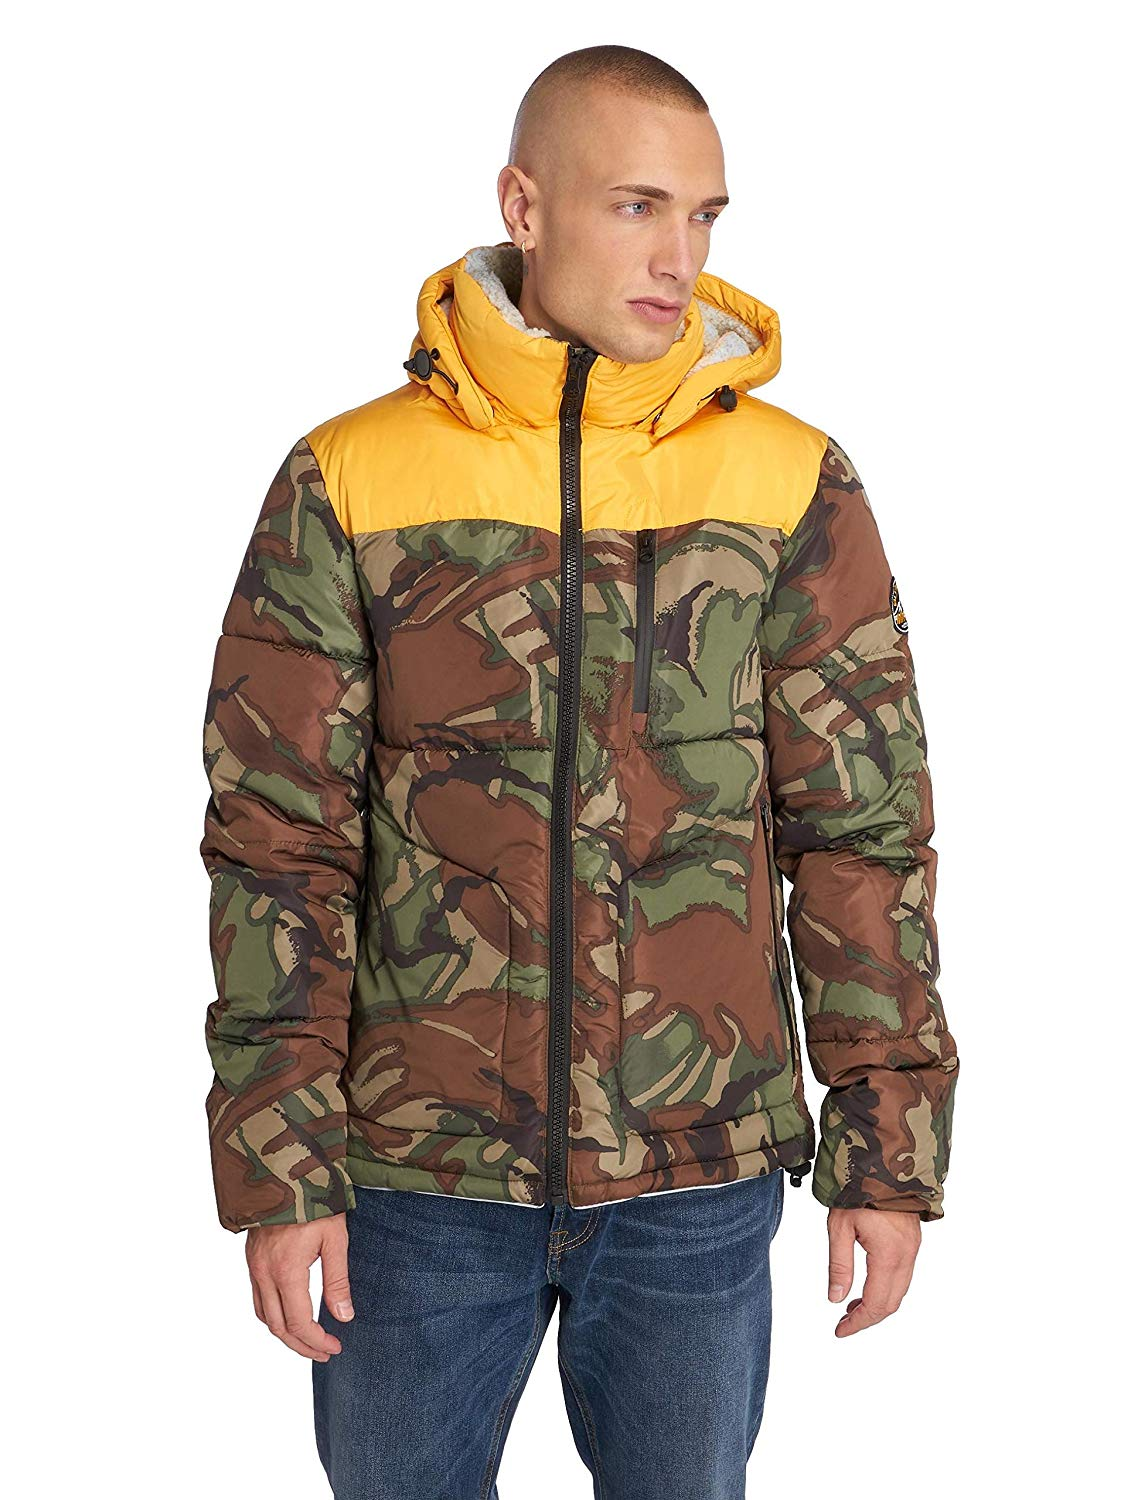 3df8b38ce0f0 Variation-B07GCNHYCV-of-Superdry-Uomo-GiaccheGiacca-Invernale-Expedition-Coat-B07HF5VZGJ-20029.jpg